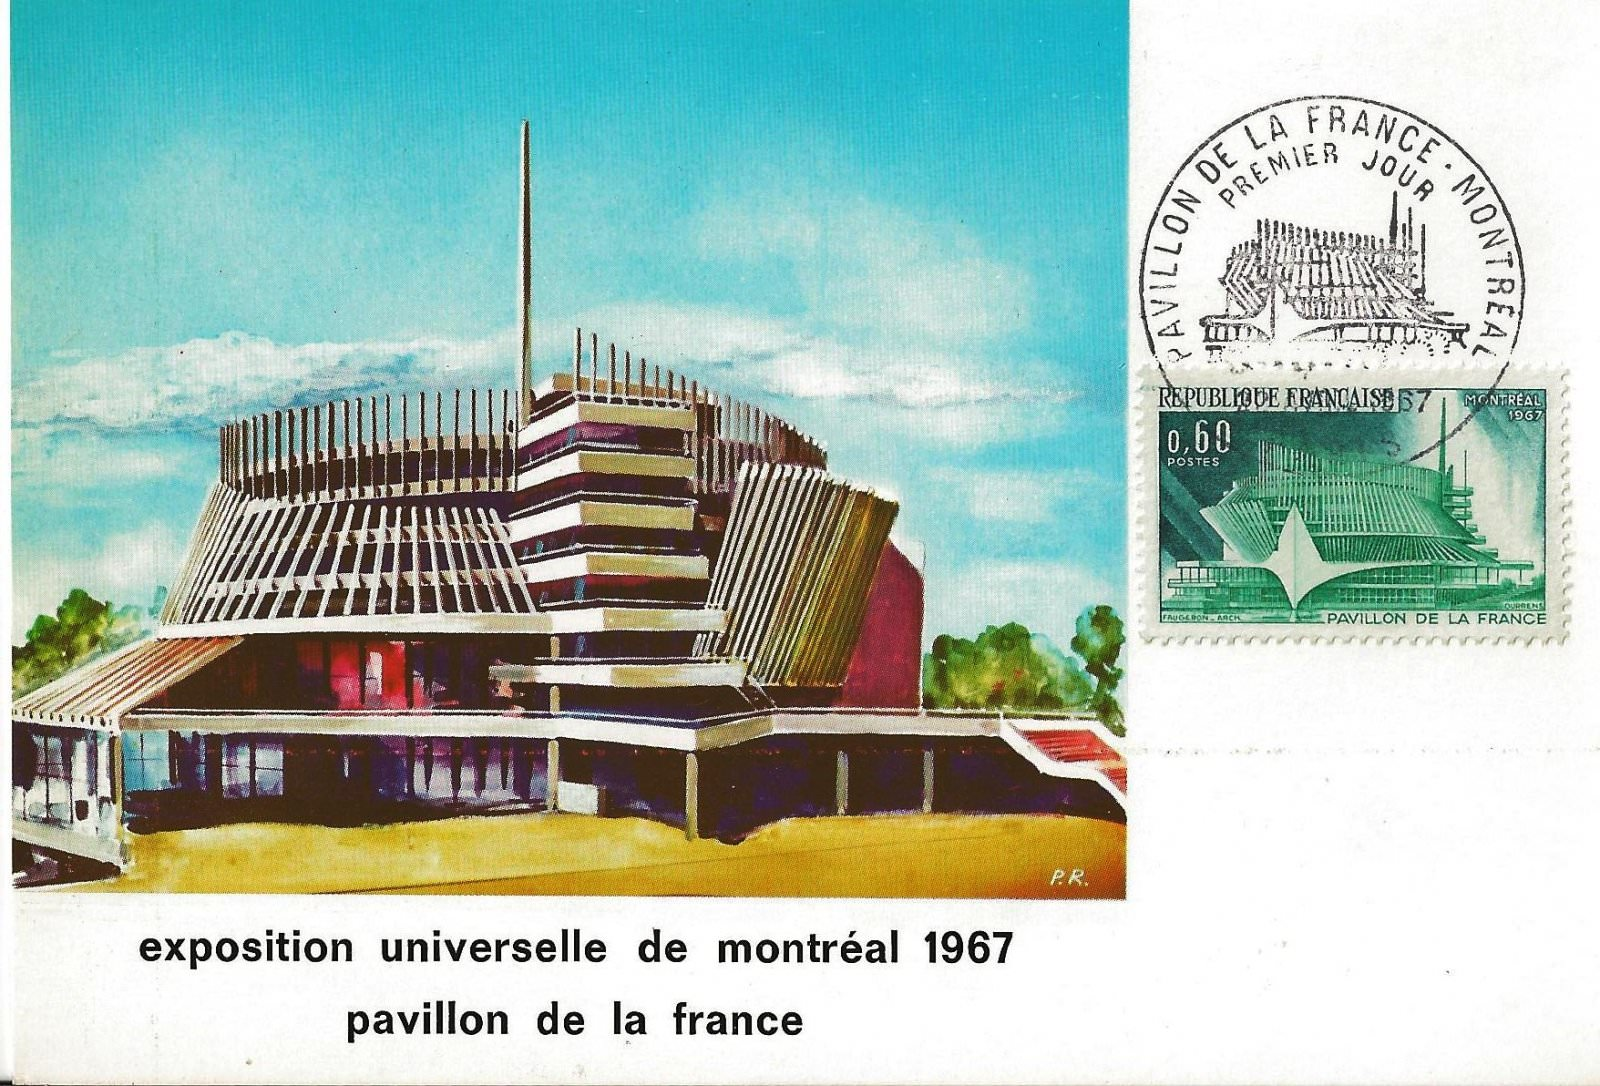 expo universelle montreal 1967